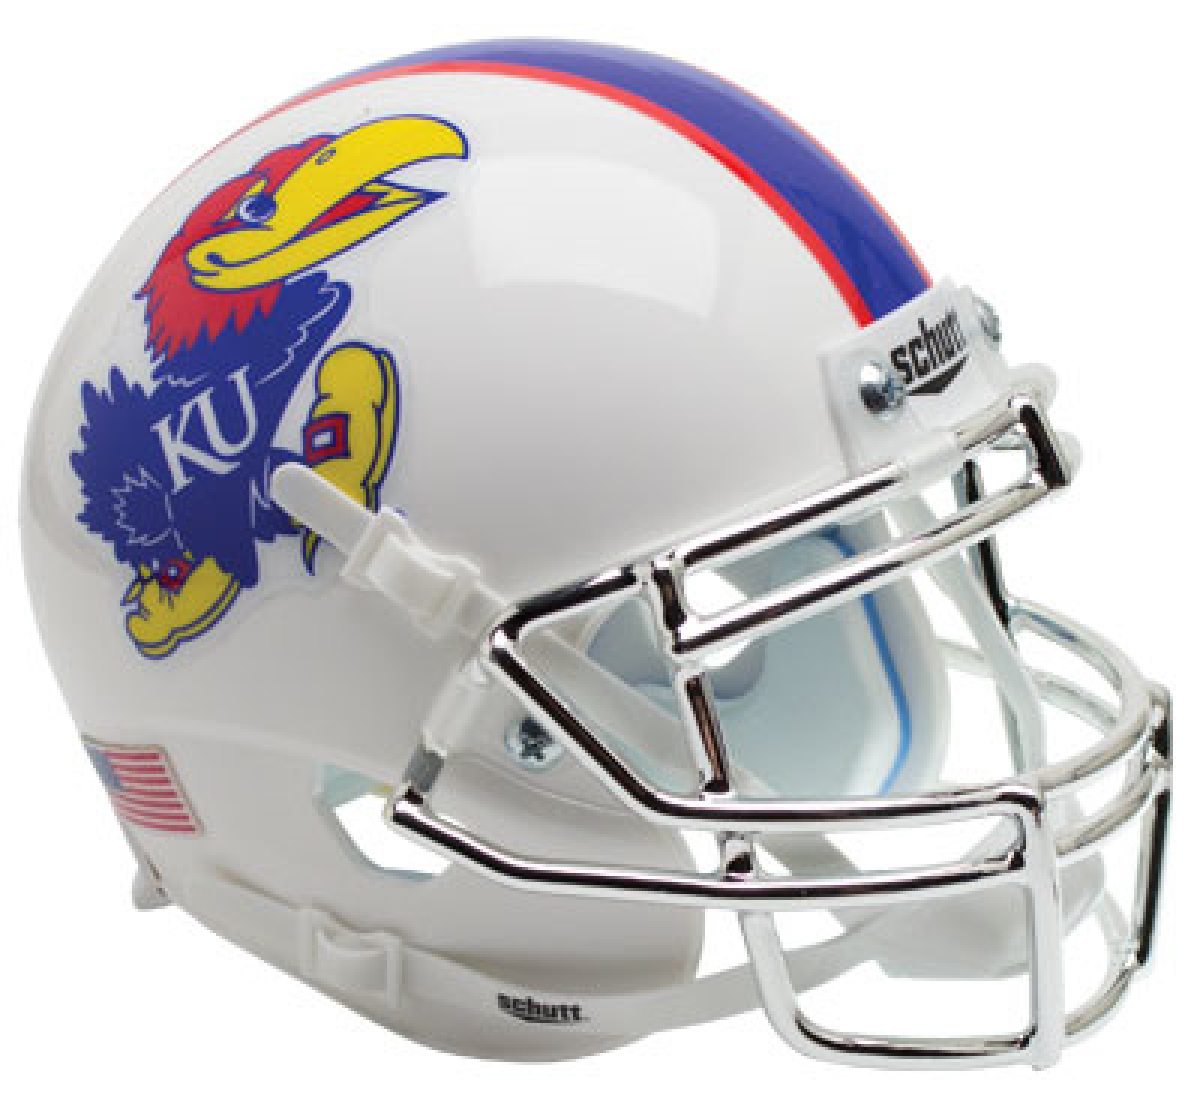 Kansas Jayhawks Authentic College XP Football Helmet Schutt <B>White with Chrome Mask</B>